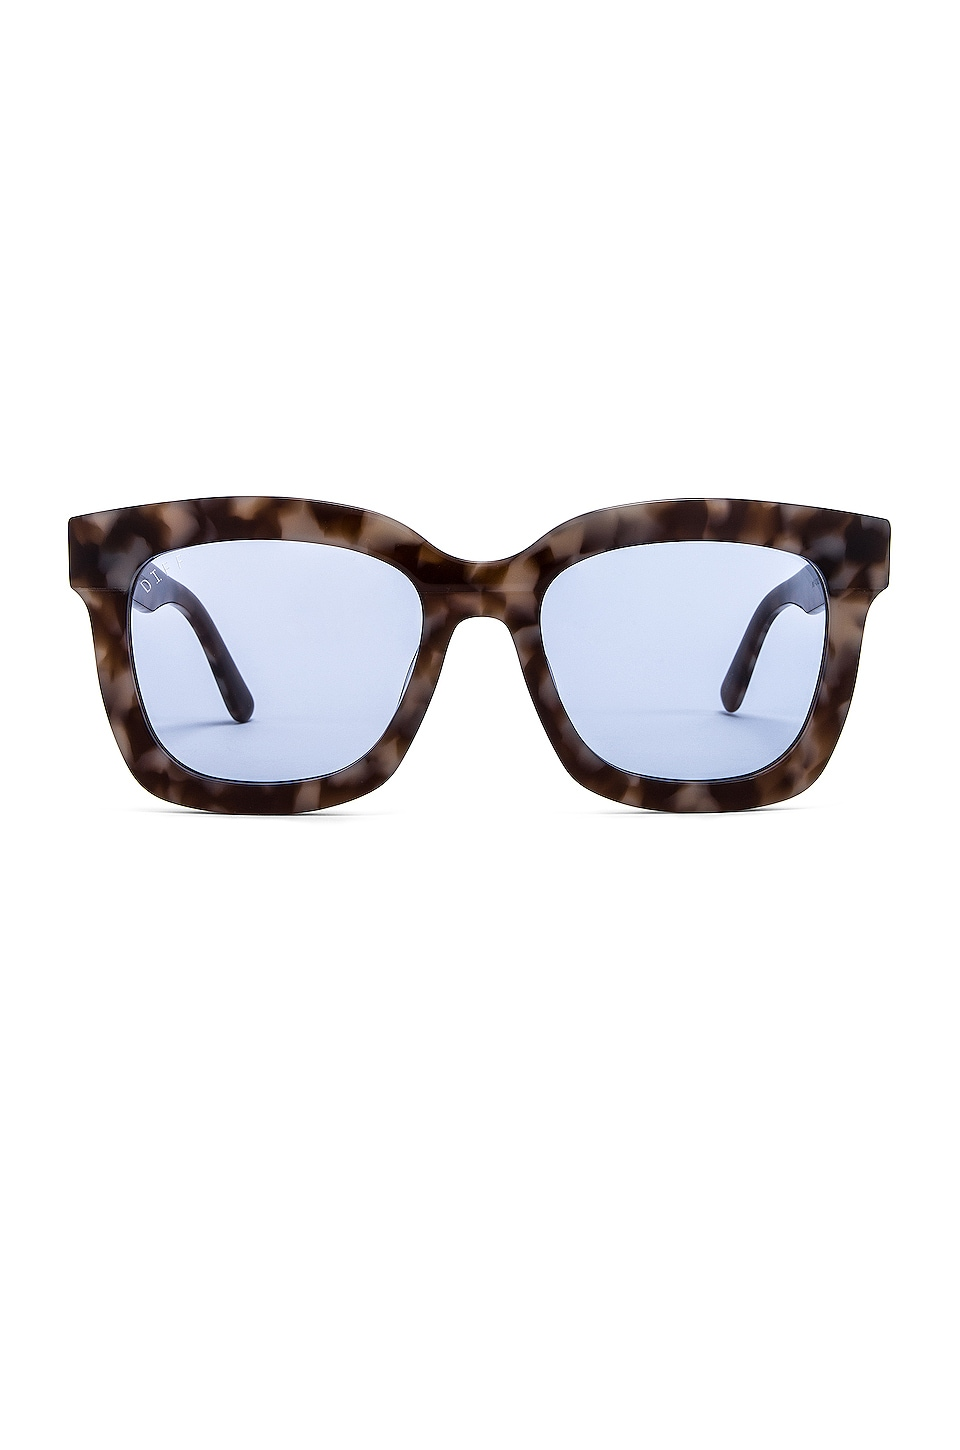 DIFF EYEWEAR Carson in Mocha Tort & Blue Transparent